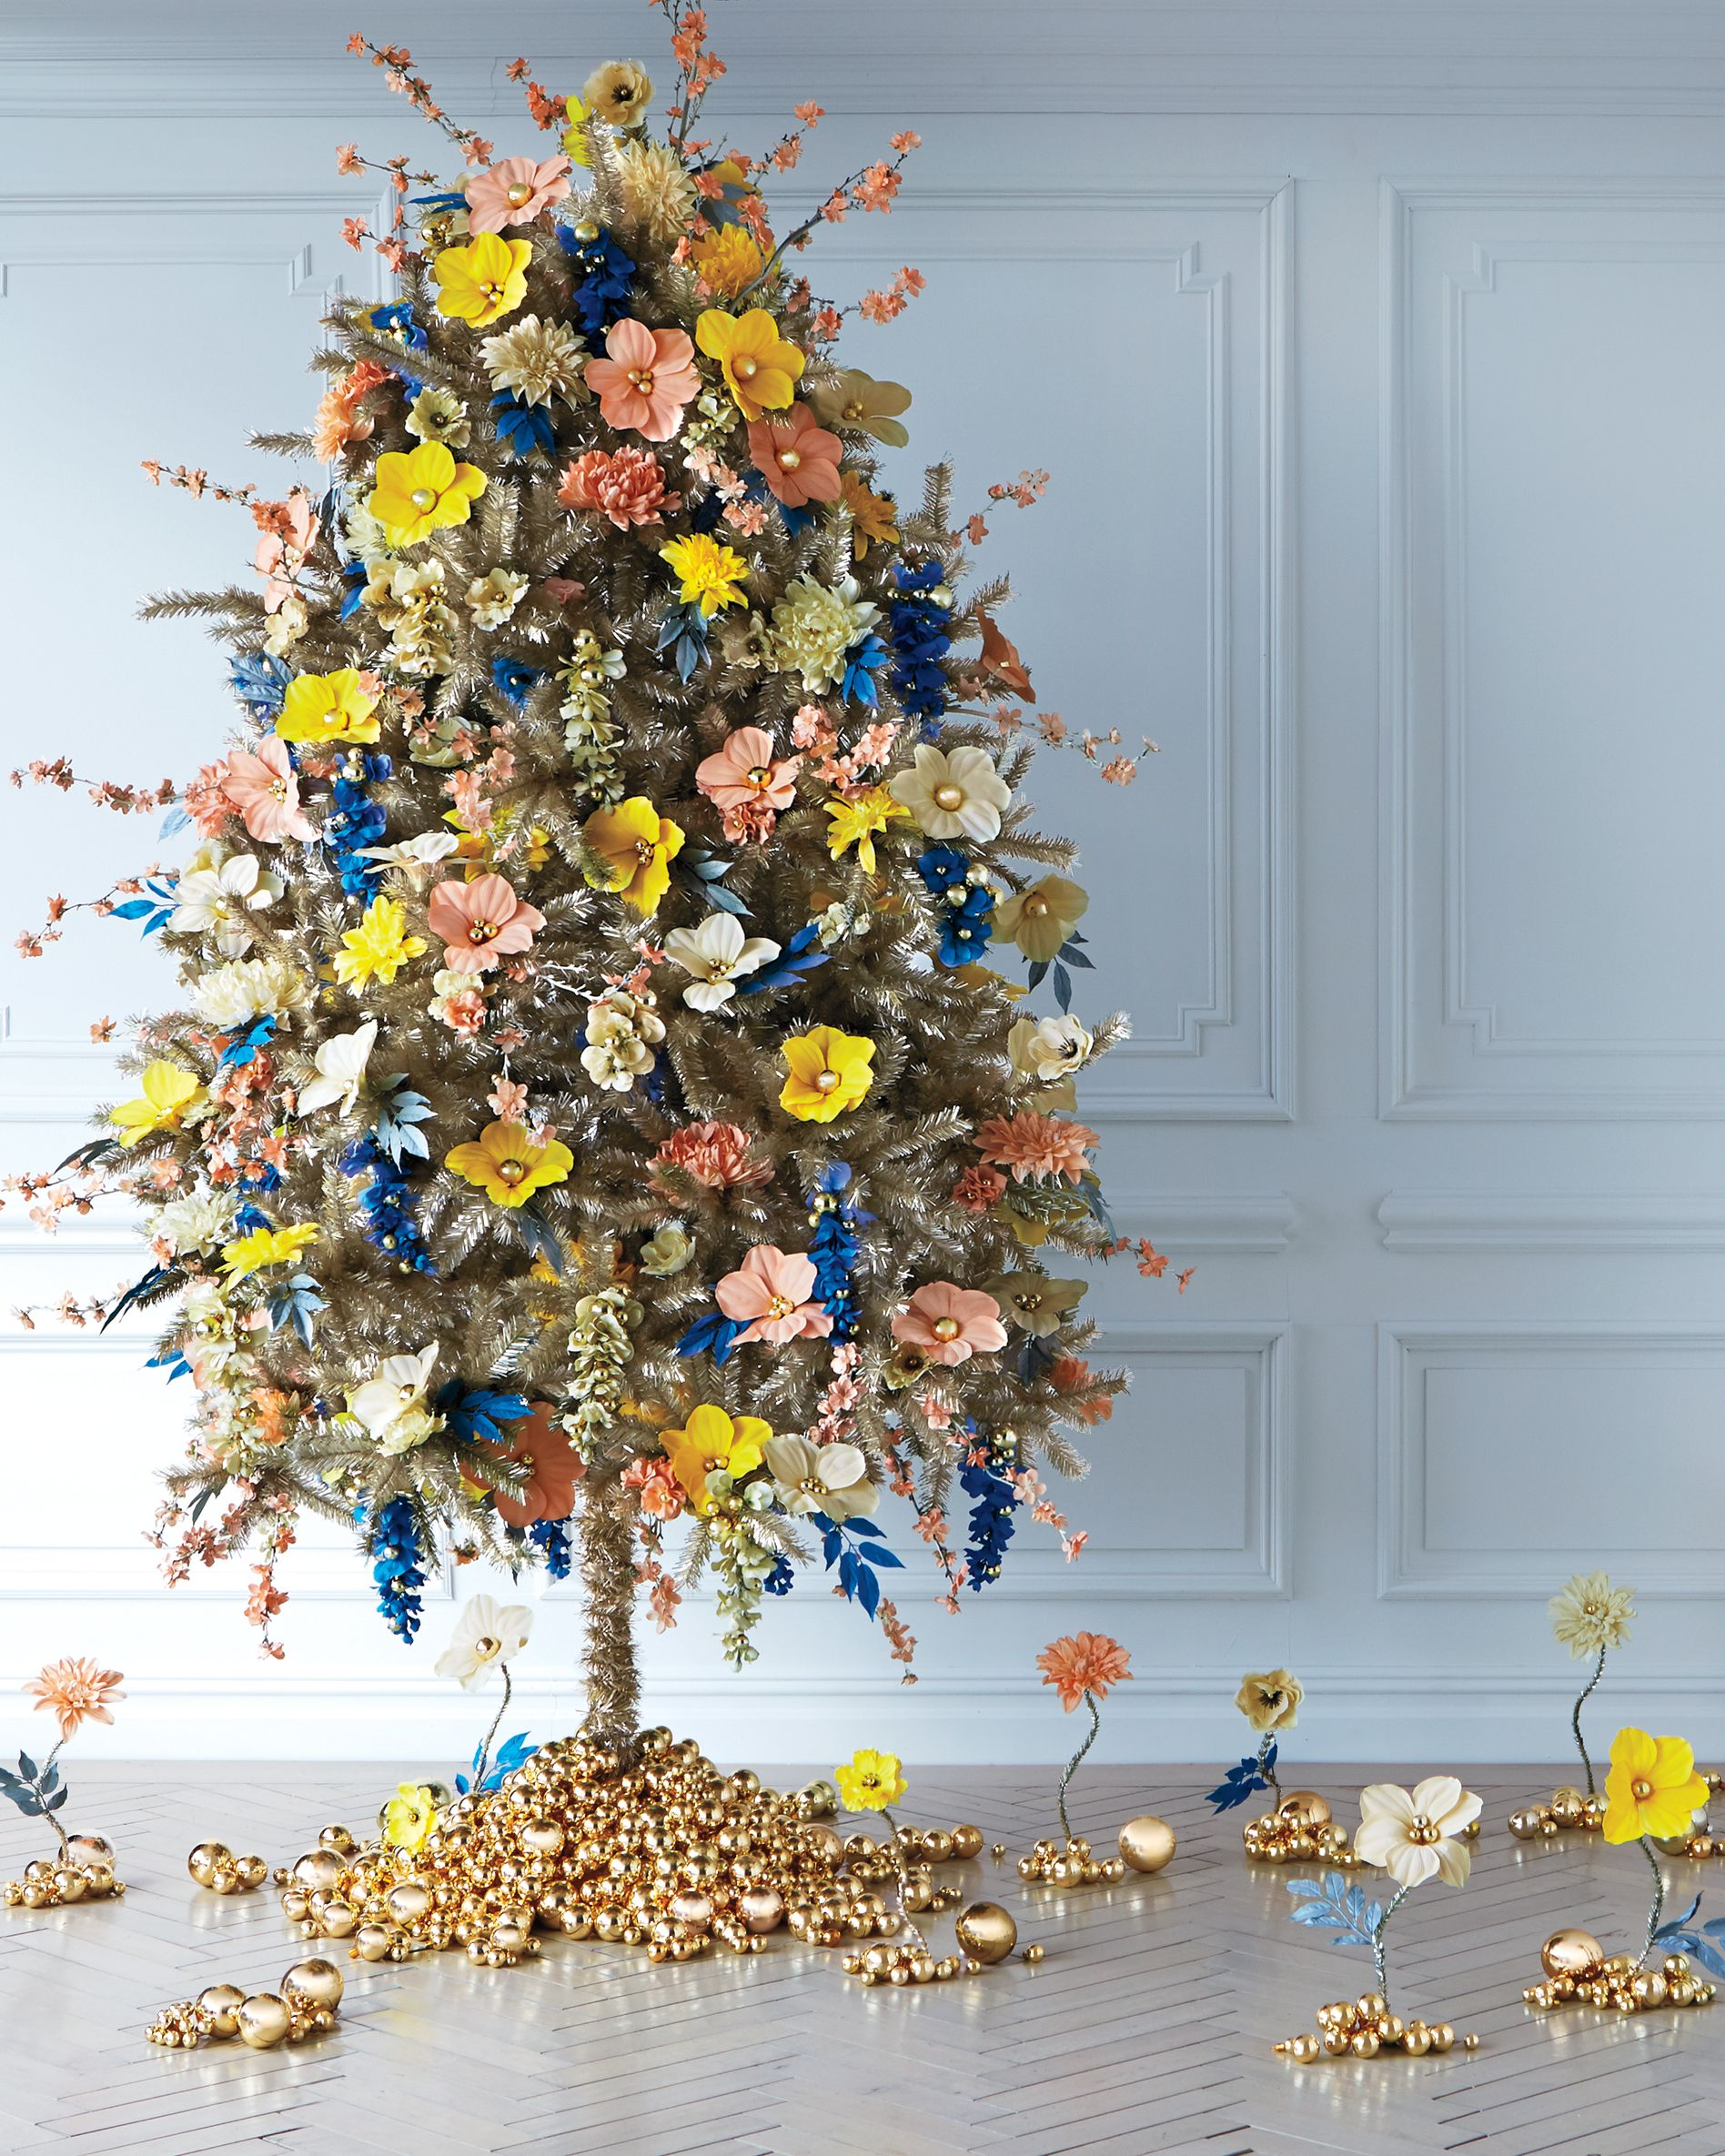 26 Of Our Most Creative Christmas Tree Decorating Ideas Creative Christmas Trees Floral Christmas Tree Christmas Tree Decorations